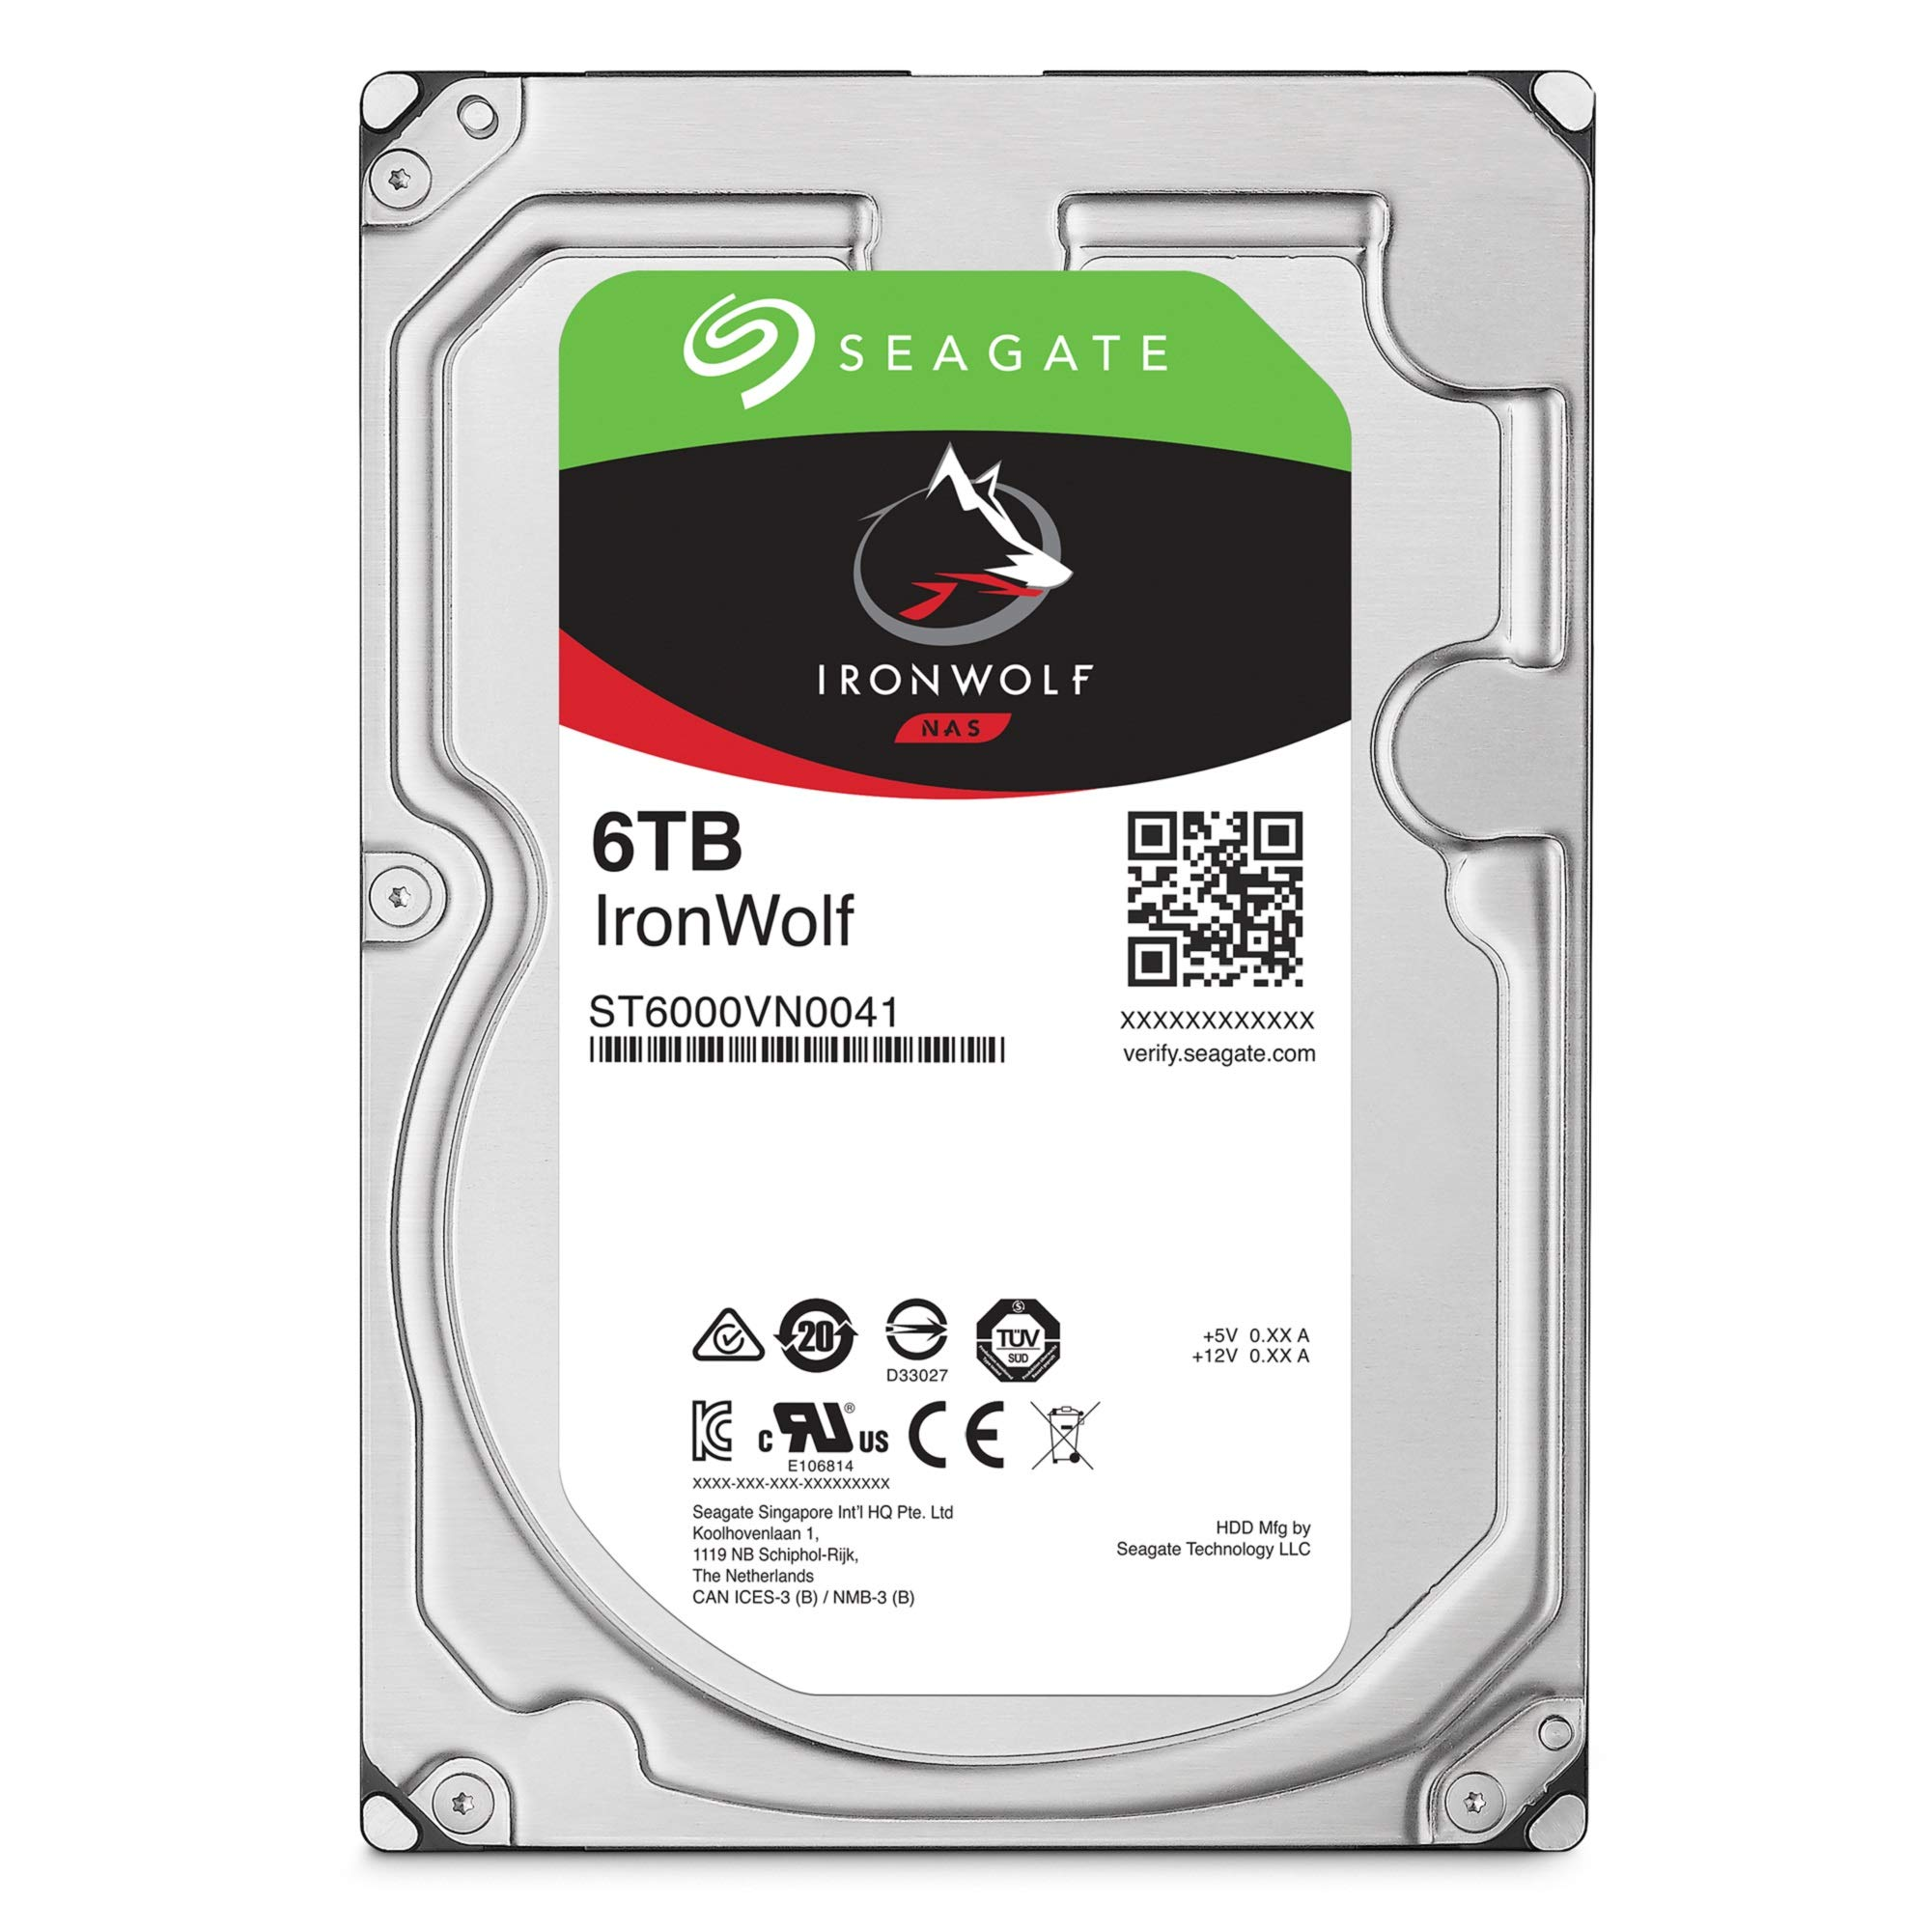 Seagate IronWolf 6TB NAS Internal Hard Drive HDD - 3.5 Inch SATA 6Gb/s 7200 RPM 256MB Cache for RAID Network Attached Storage (ST6000VN0033) by Seagate (Image #2)